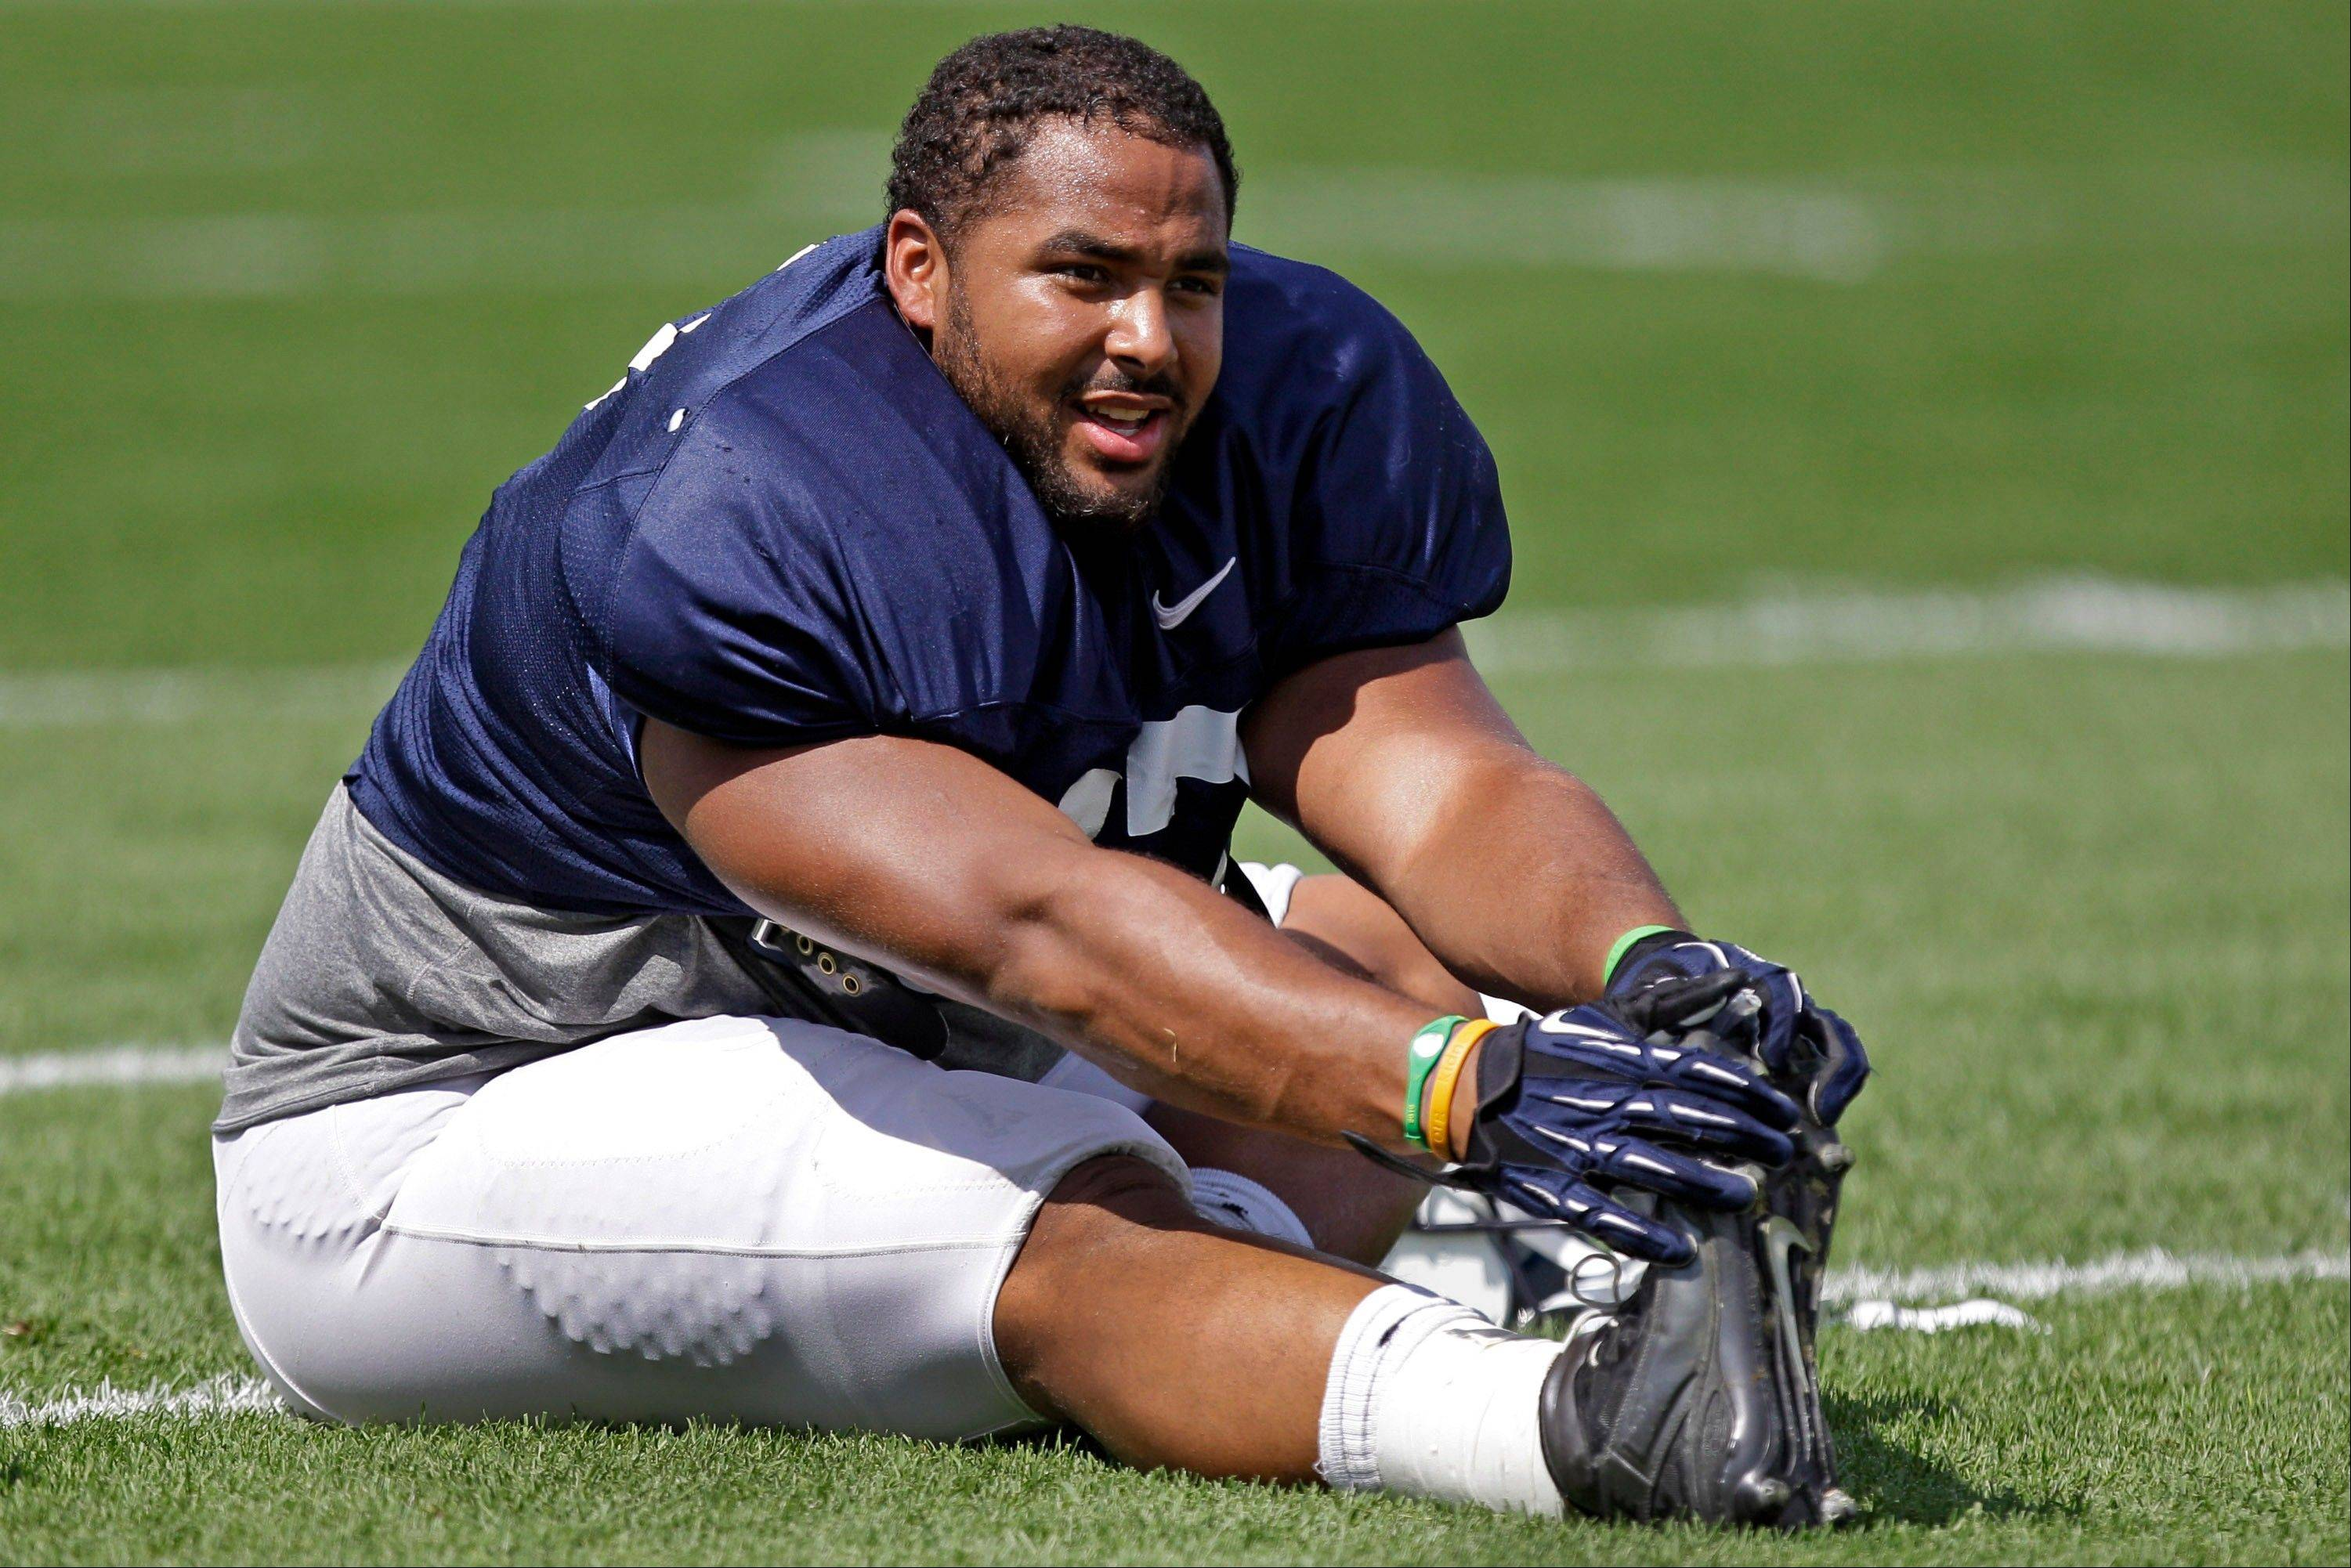 Quiet and laid back, Penn State defensive tackle Jordan Hill flashes an easygoing smile. The friendly personality makes it hard to dislike the Penn State defensive tackle — unless, of course, you're an opposing offensive lineman constantly getting steamrollered by him on the field.